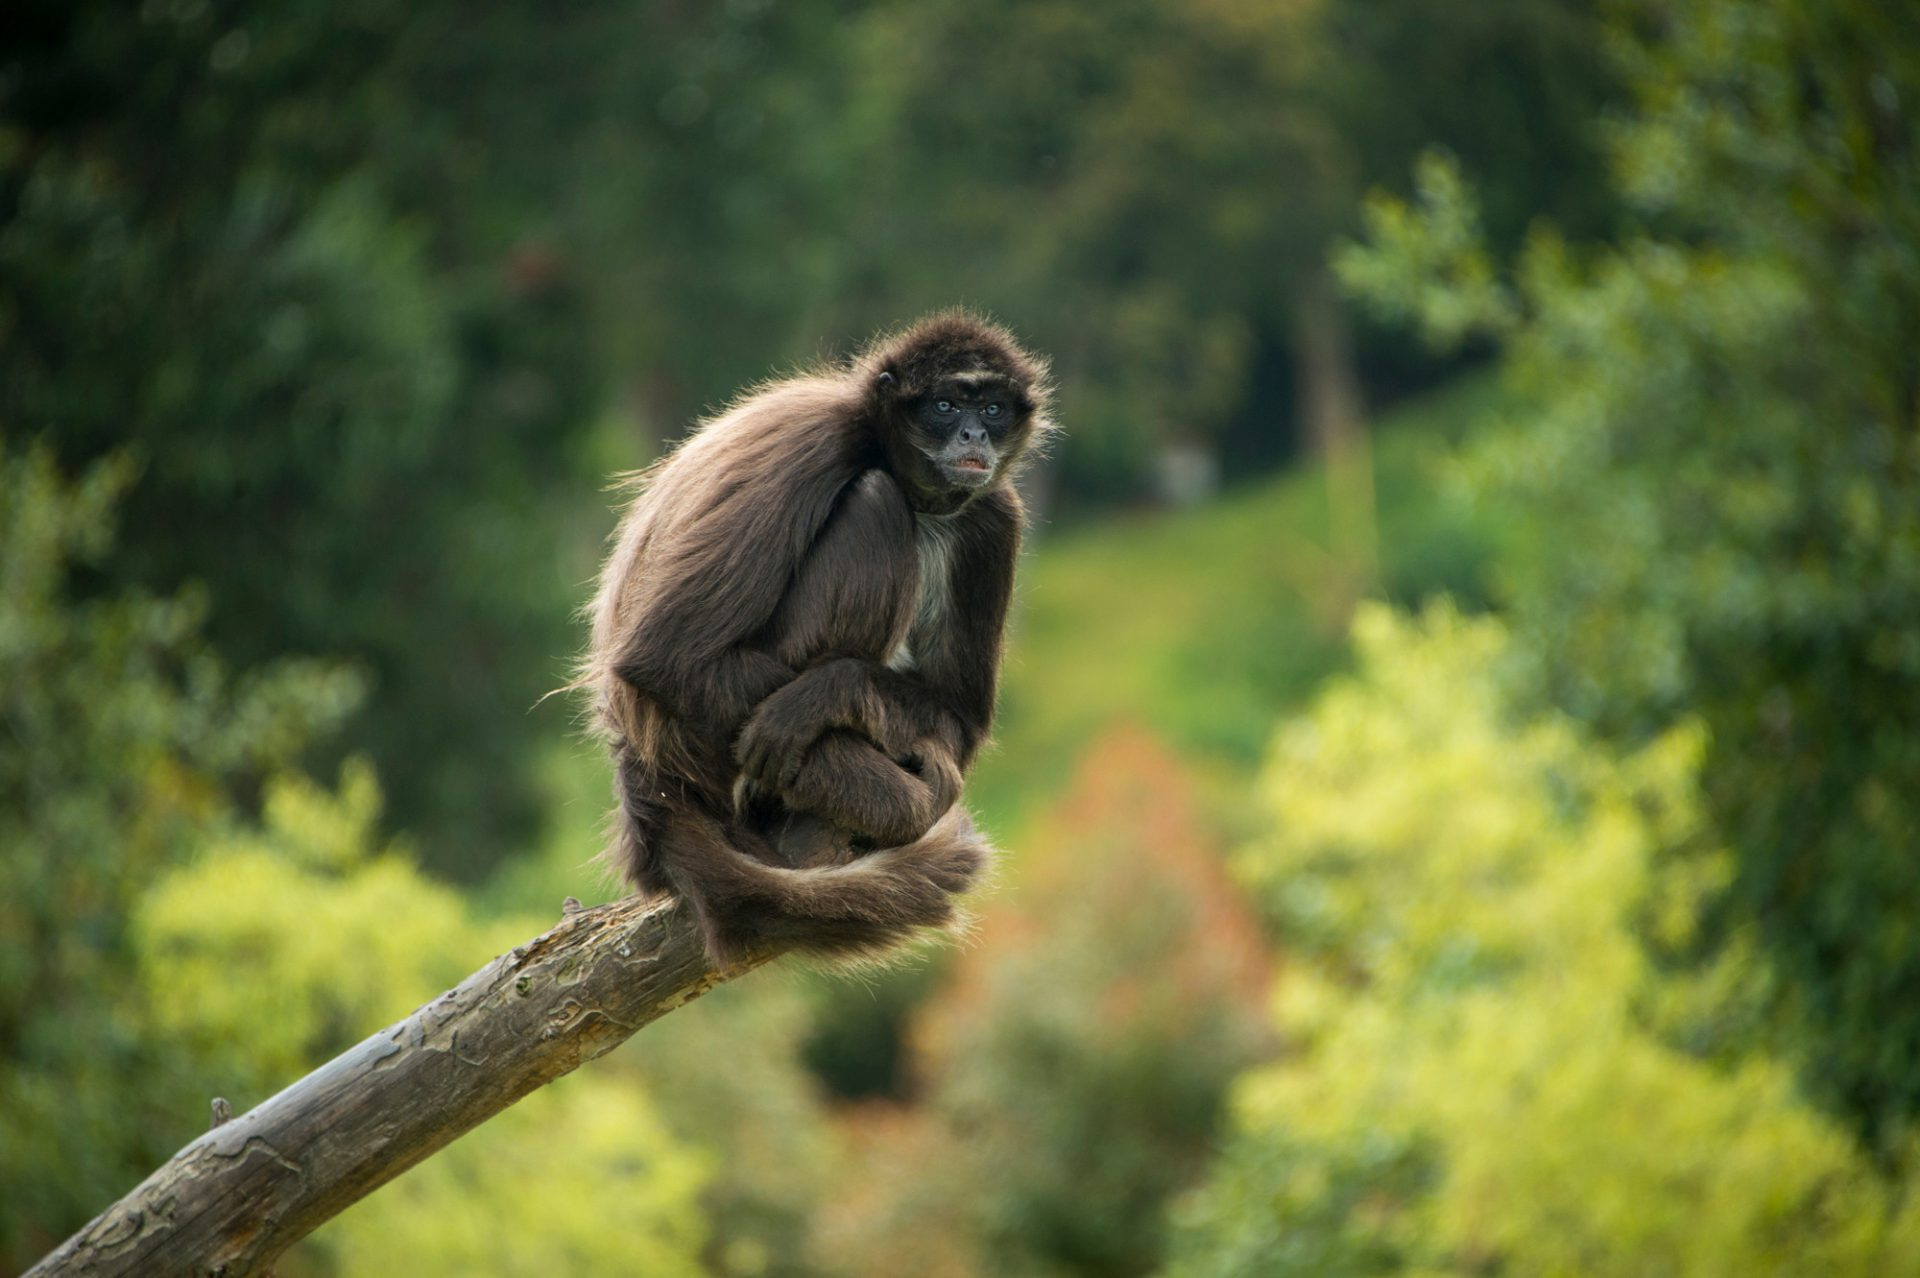 Picture of a critically endangered brown spider monkey, Ateles hybridus, at Parque Jaime Duque in Colombia.